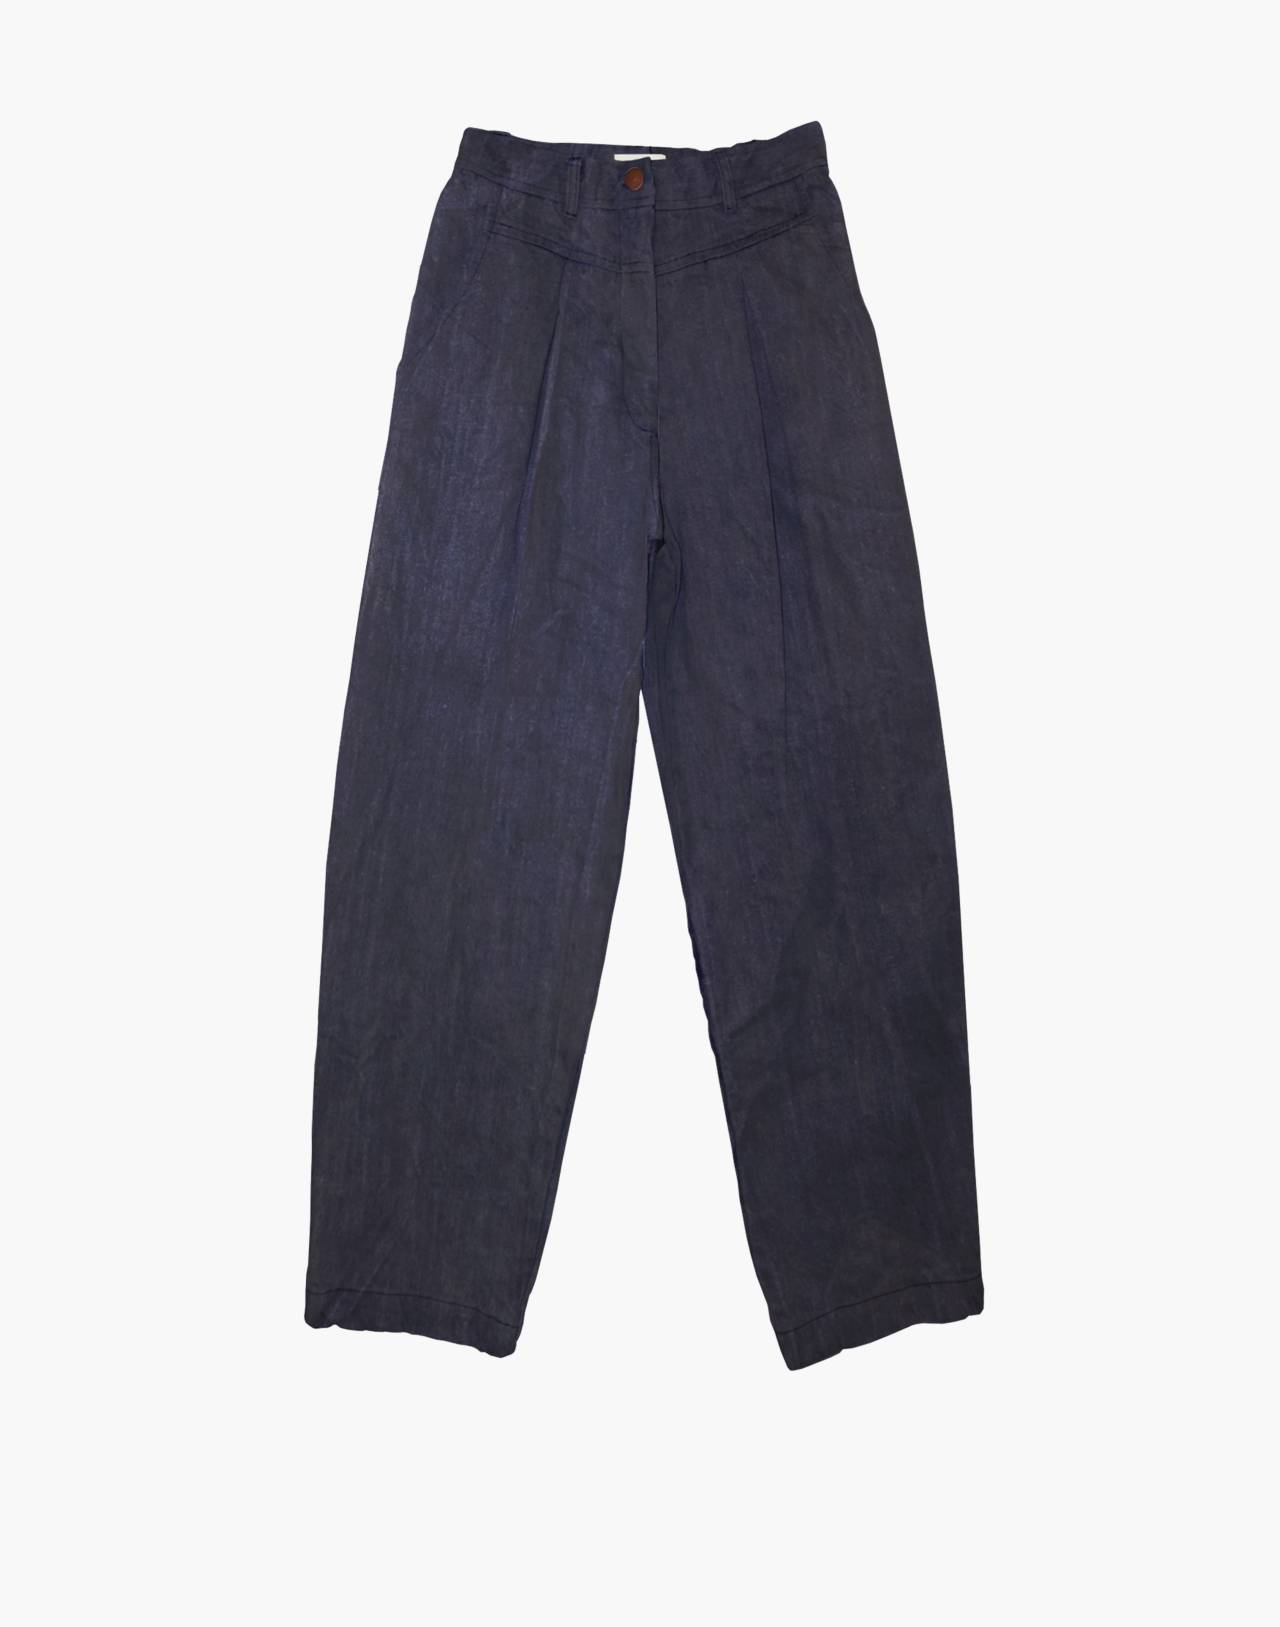 NICO NICO™ Jet Pleated Jeans in blue image 1